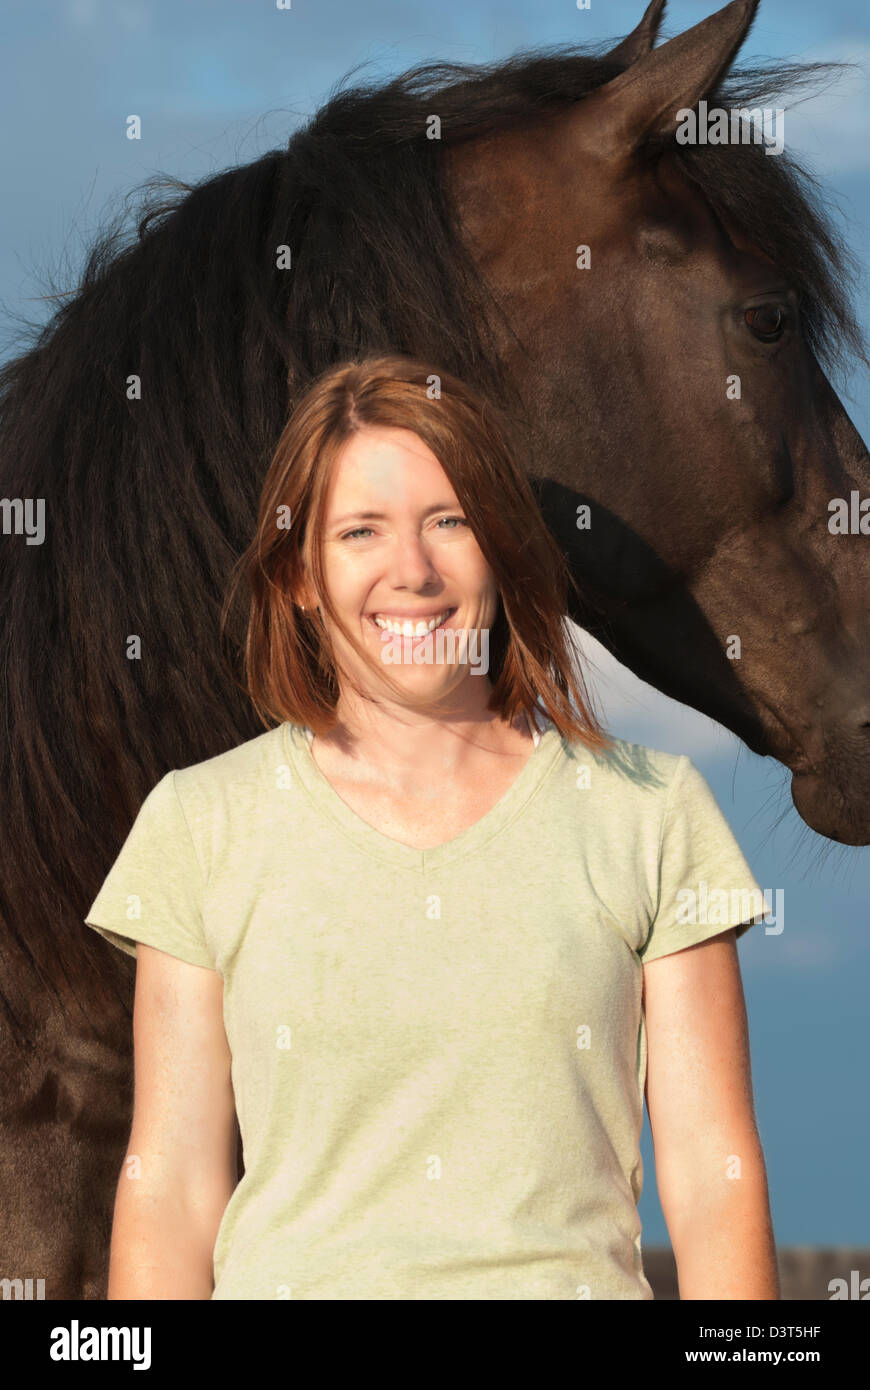 Woman horse trainer in front of large black animal, smiling, happy, and confident horsewoman portrait in sunlight. - Stock Image